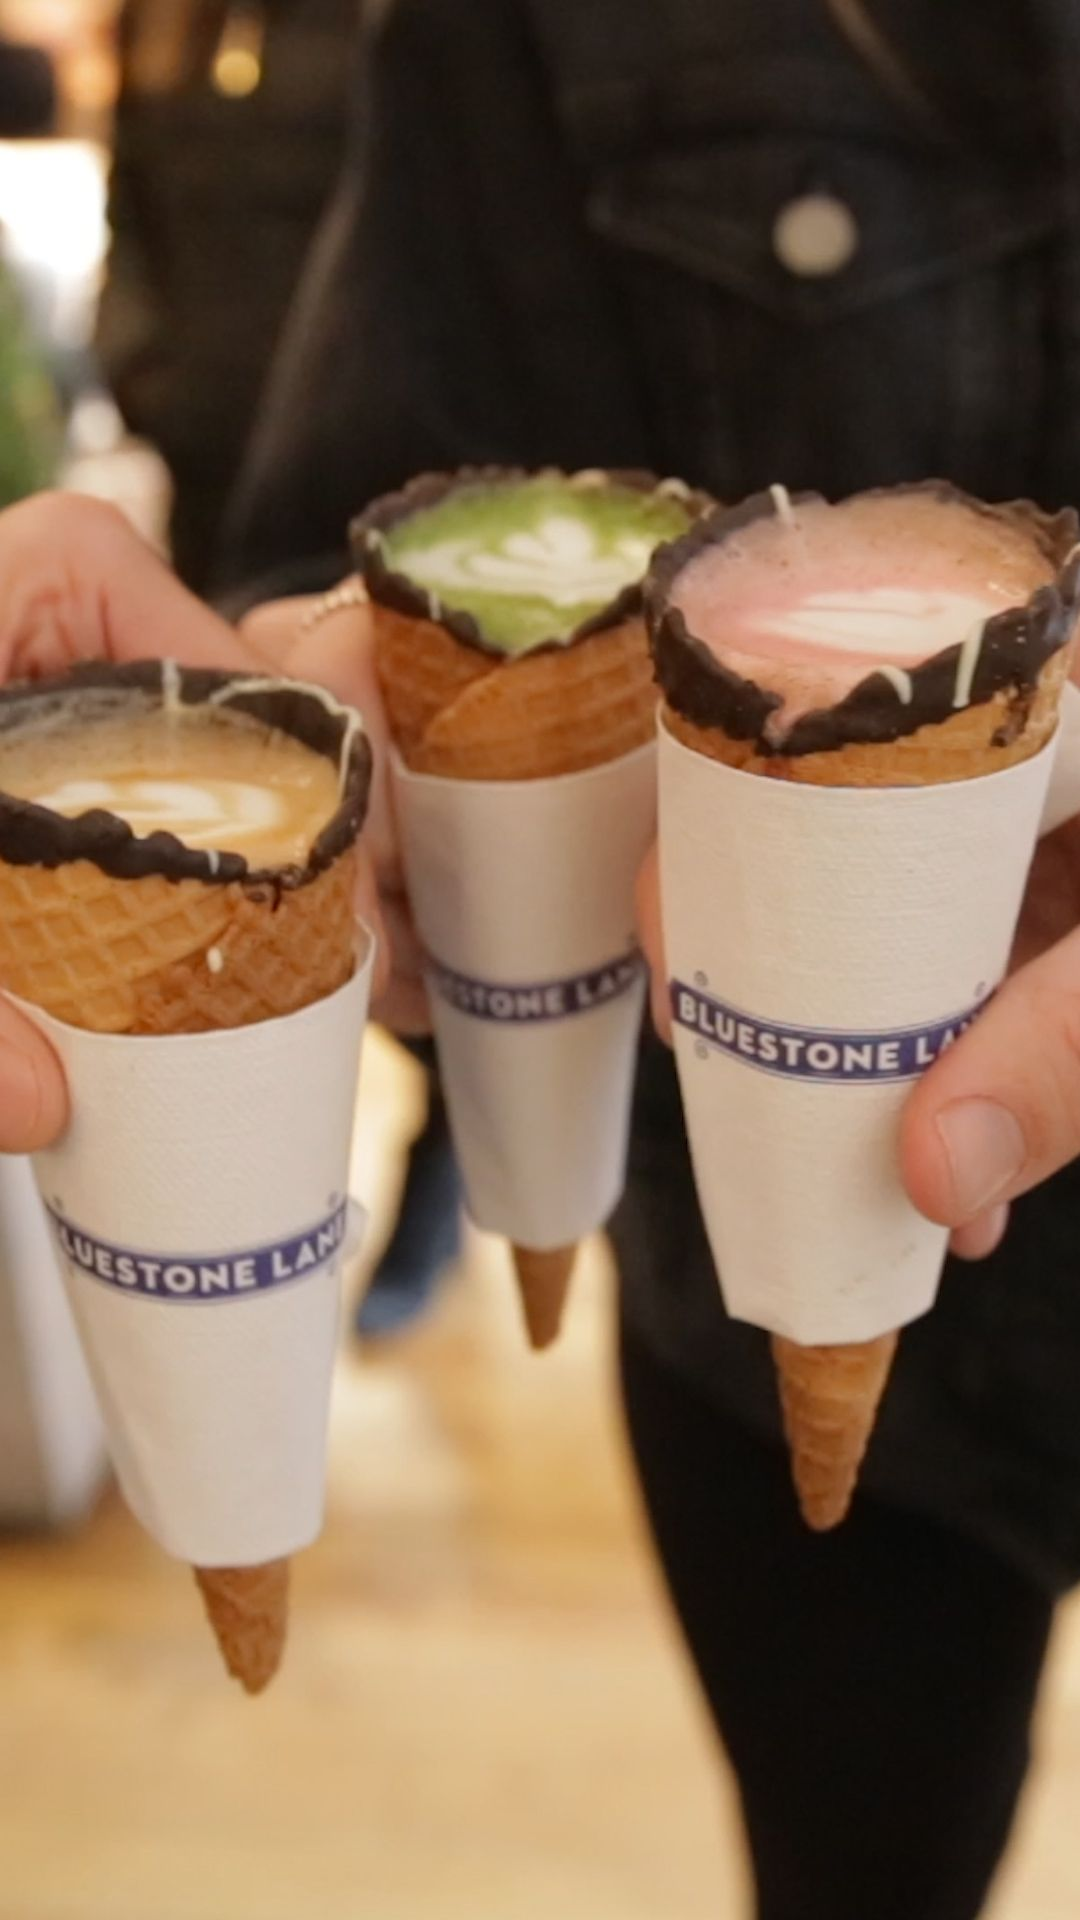 At NYC's Bluestone Lane, you can have your latte in a crunchy and delicious ice cream cone.